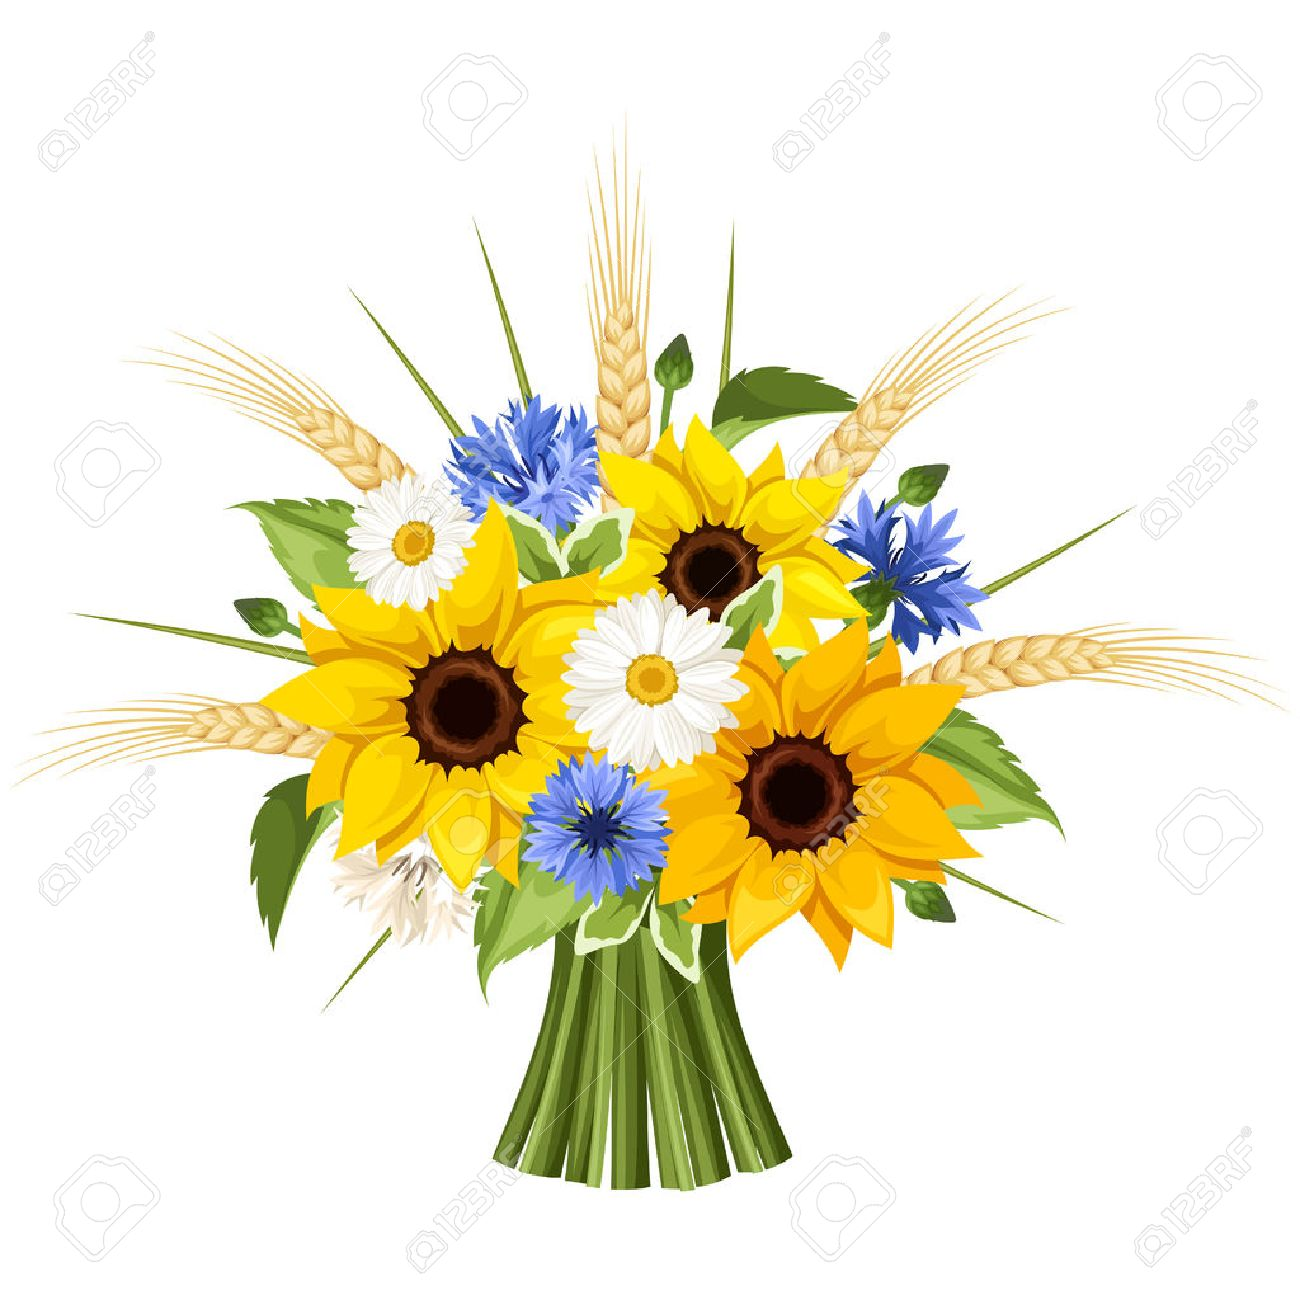 Bouquet of sunflowers, daisies, cornflowers and ears of wheat.